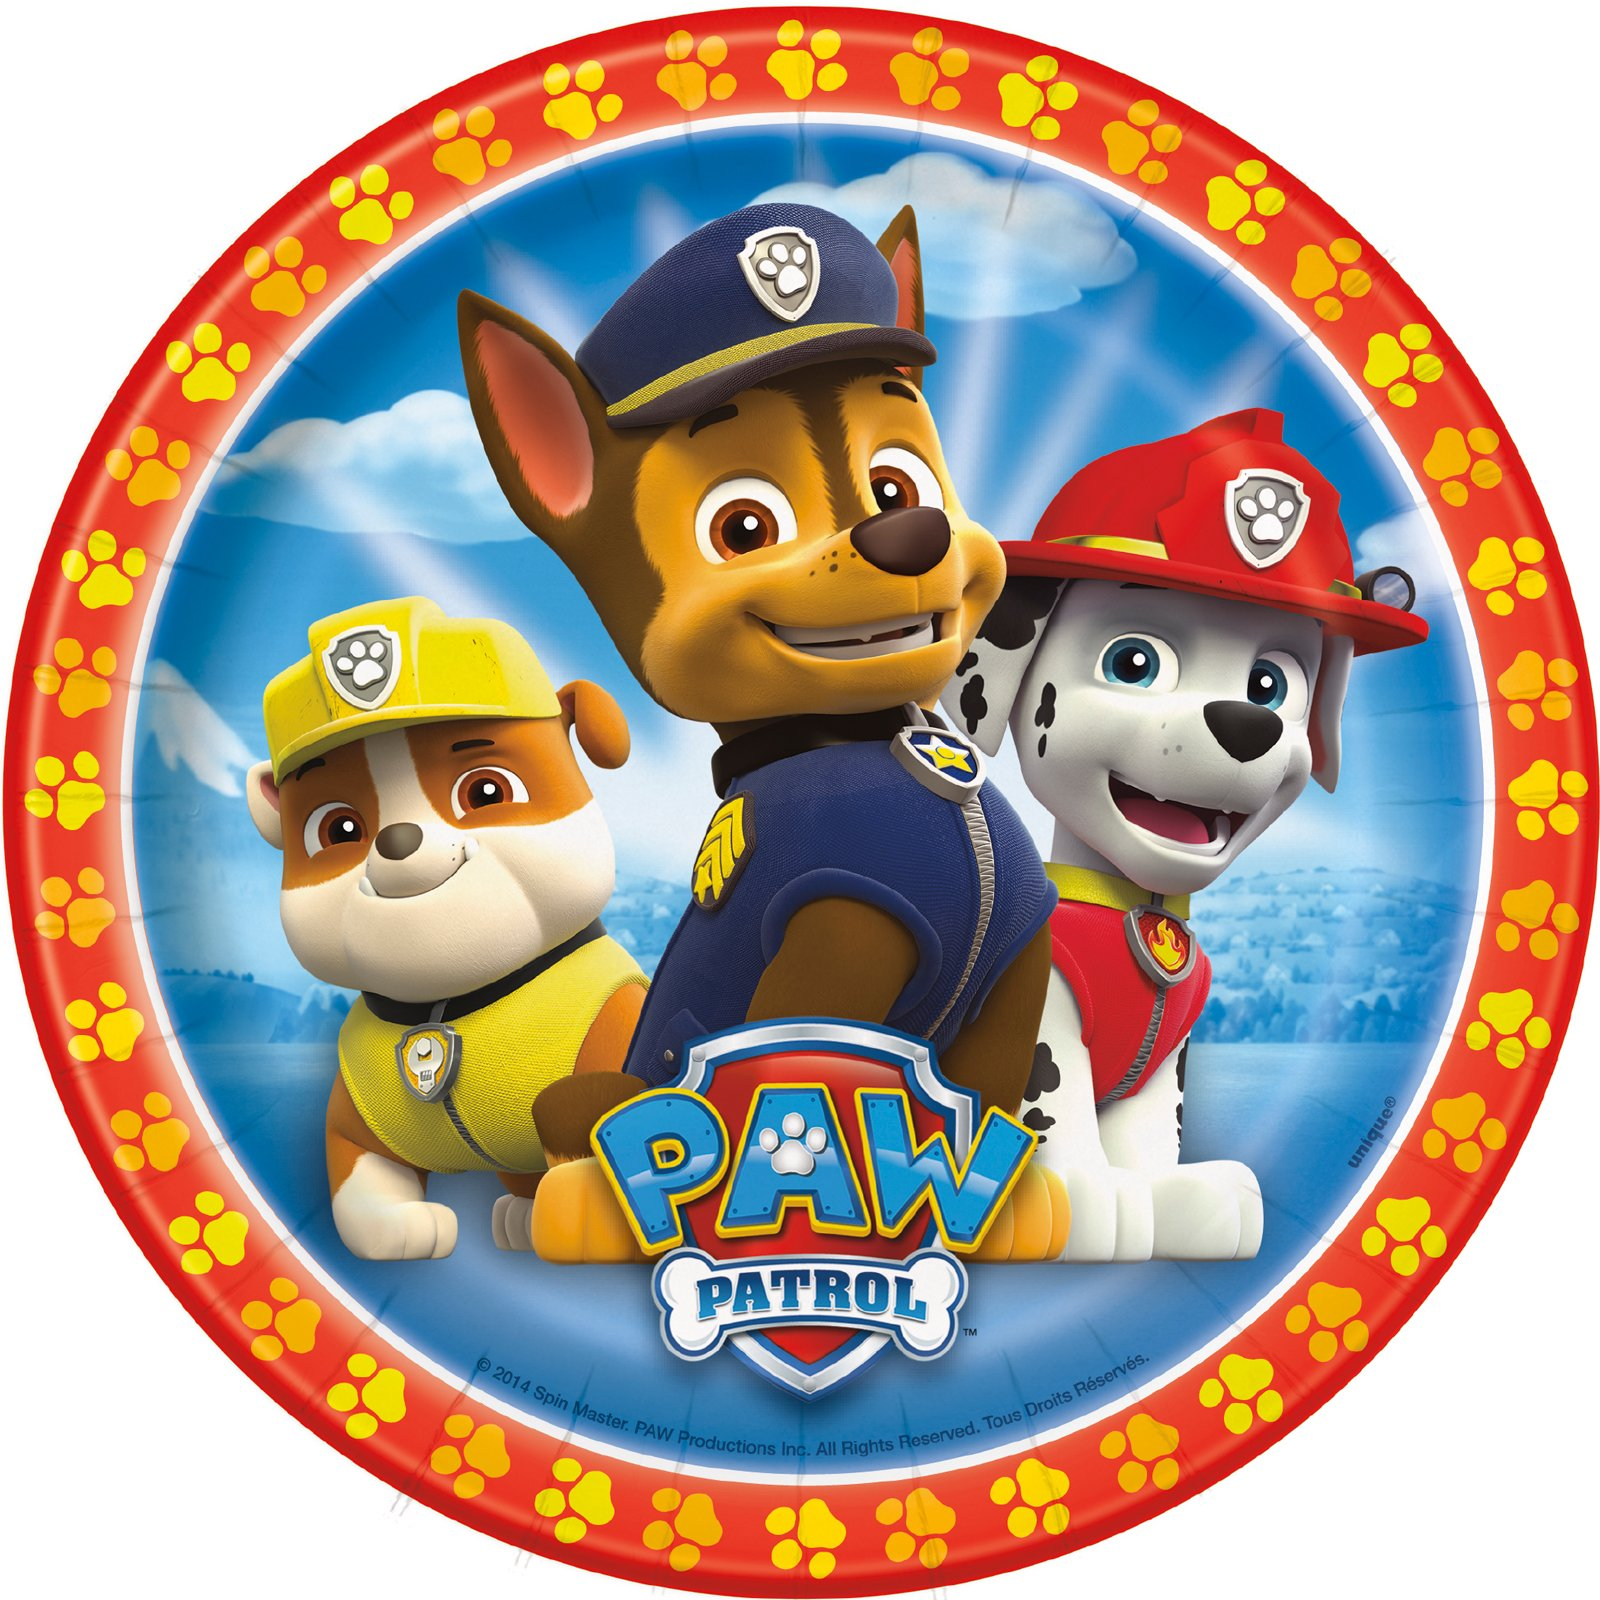 pow 3 on patrol Paw patrol coloring pages select from 29742 printable coloring pages of cartoons, animals, nature, bible and many more.